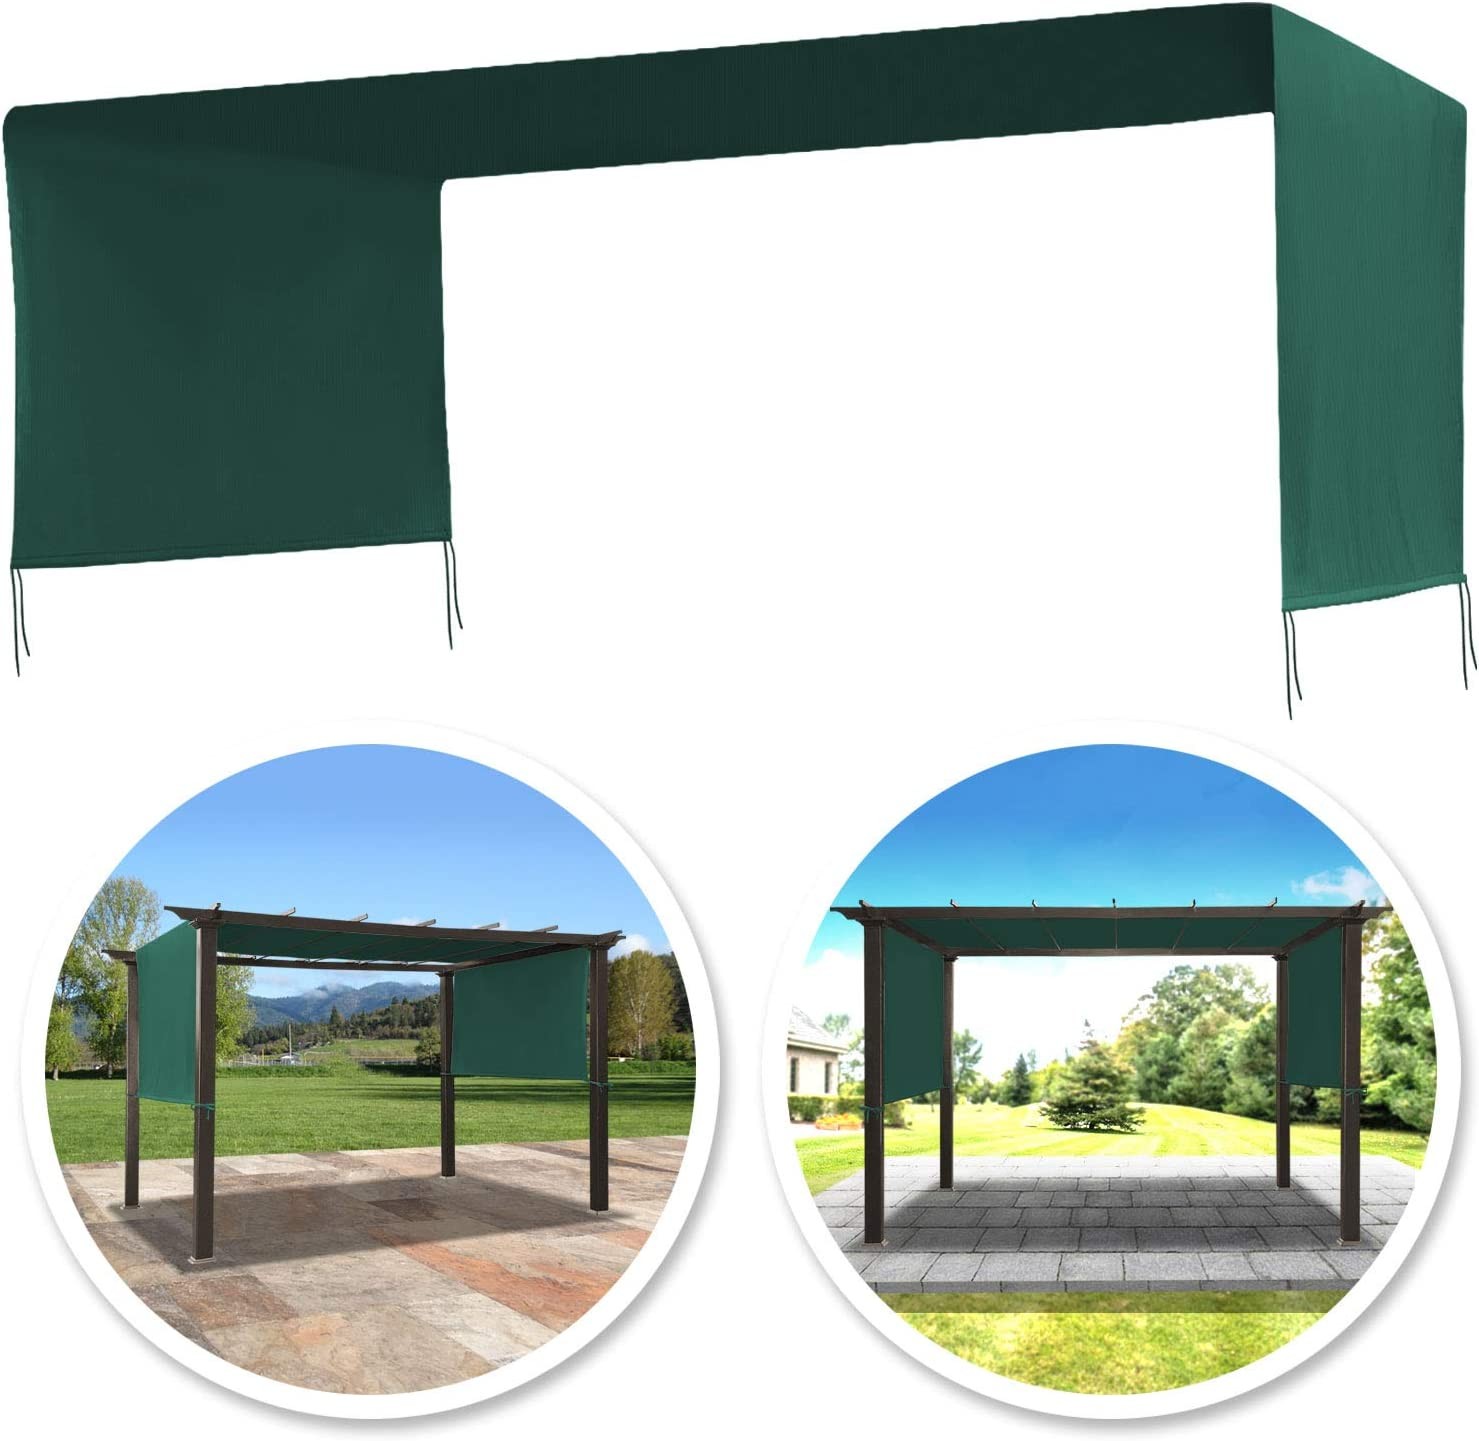 Amazon Com Benefitusa 17x 6 7 Ft Universal Replacement Canopy For Pergola Structure Outdoor Canopy Only Green Garden Outdoor